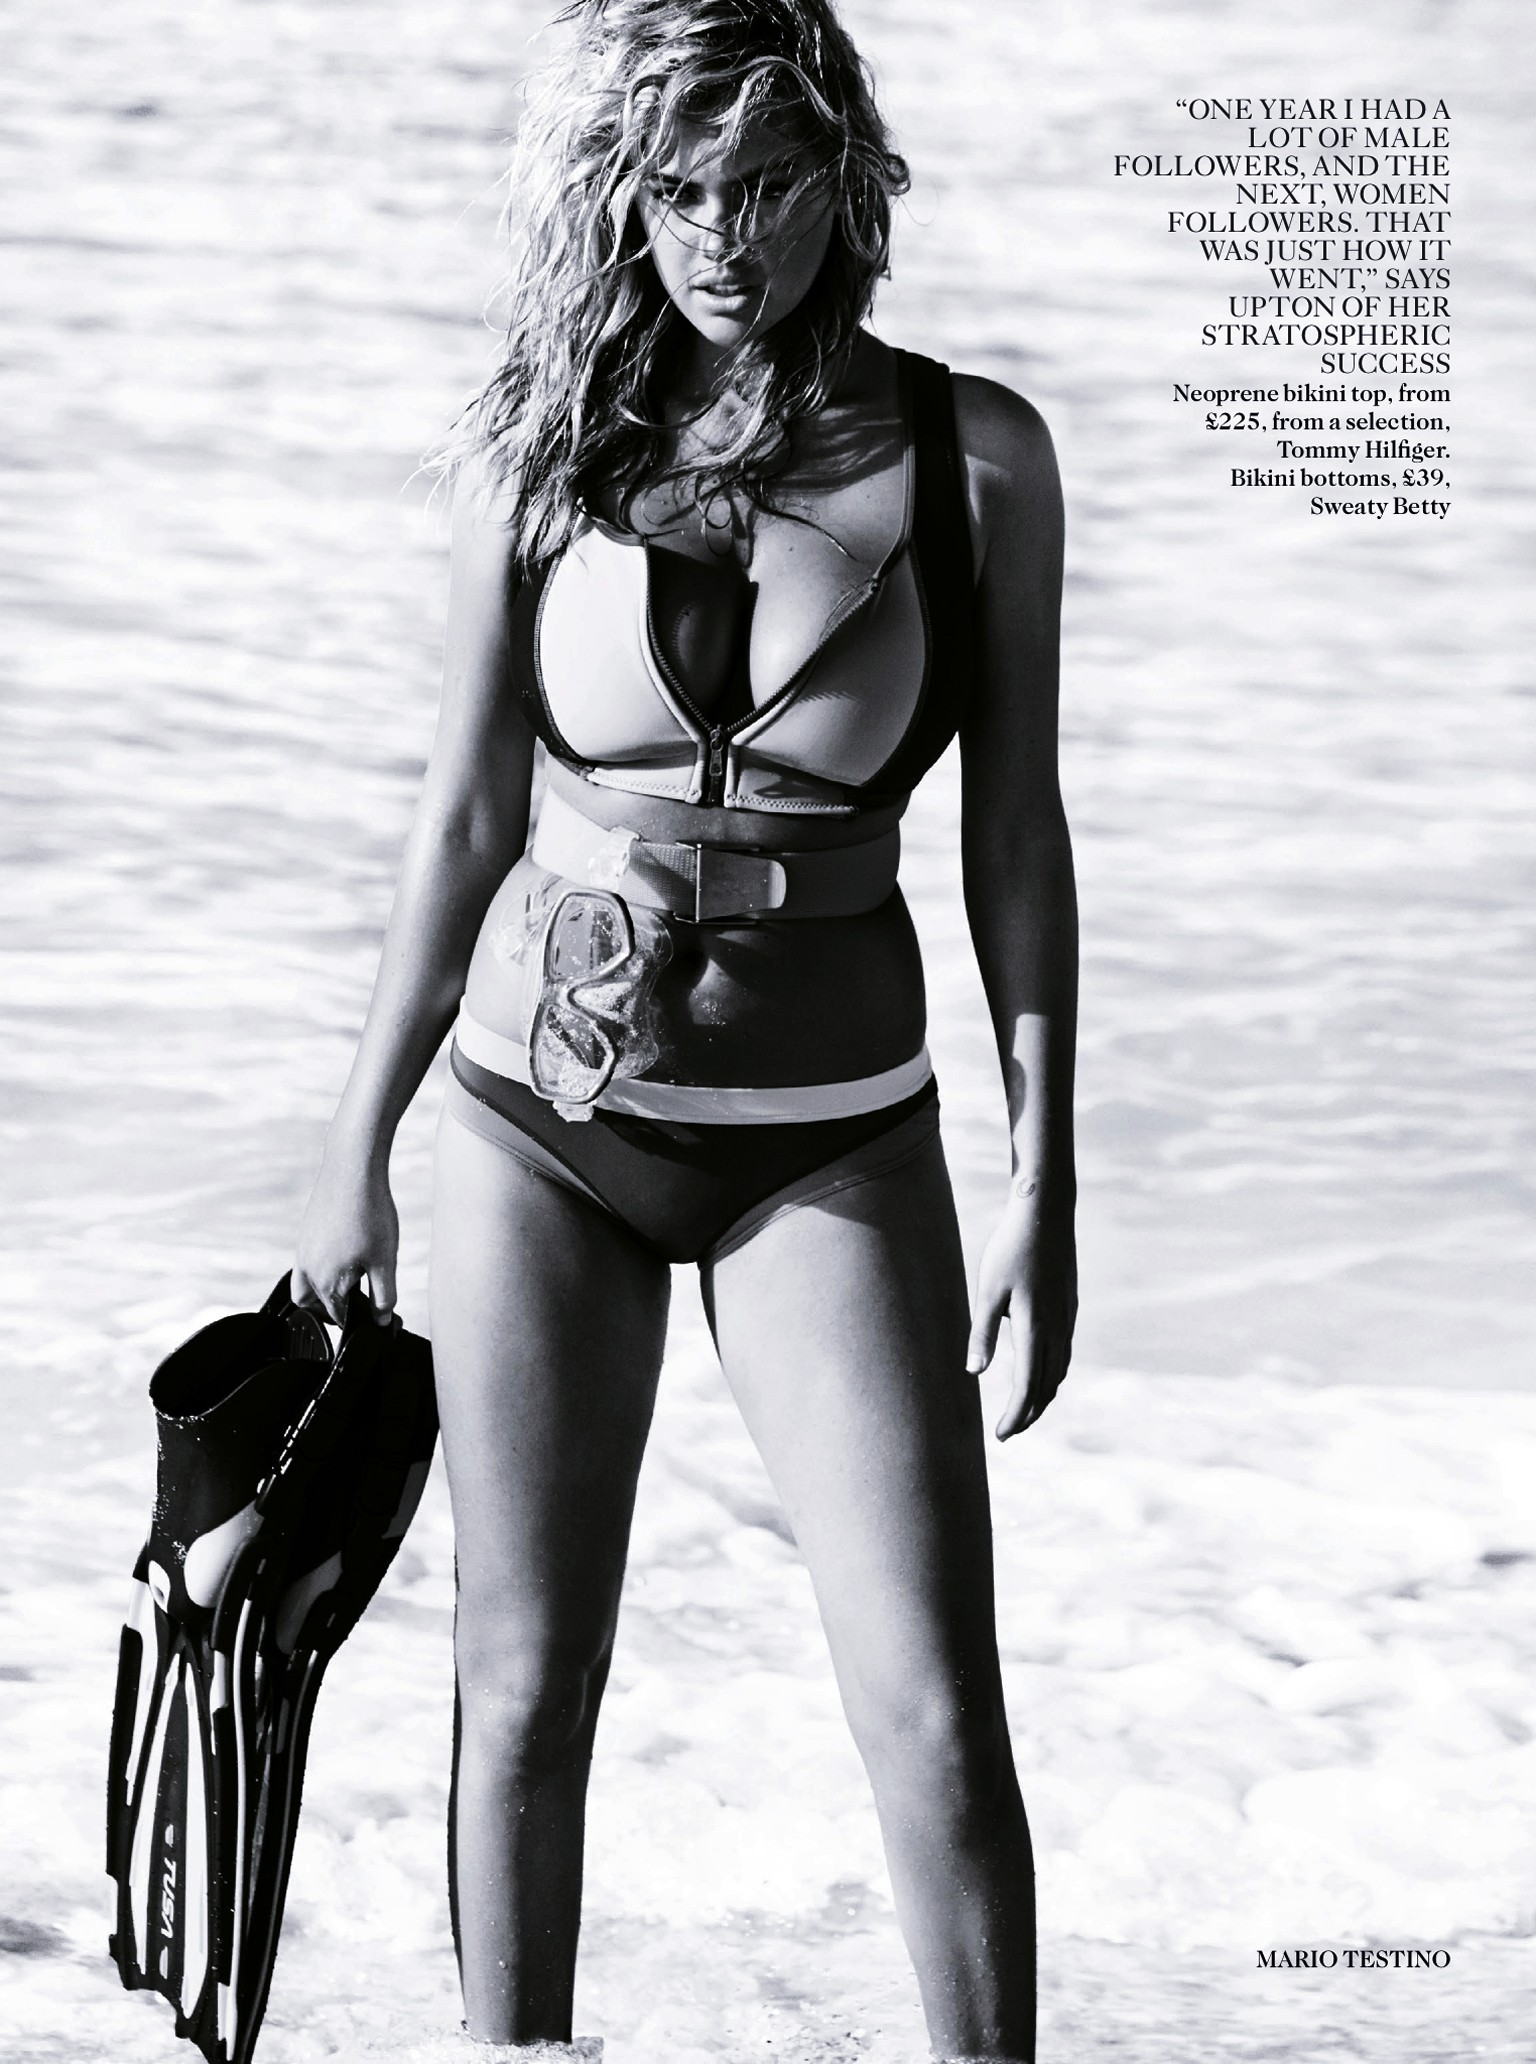 fashion_scans_remastered-kate_upton-vogue_uk-june_2014-scanned_by_vampirehorde-hq-3